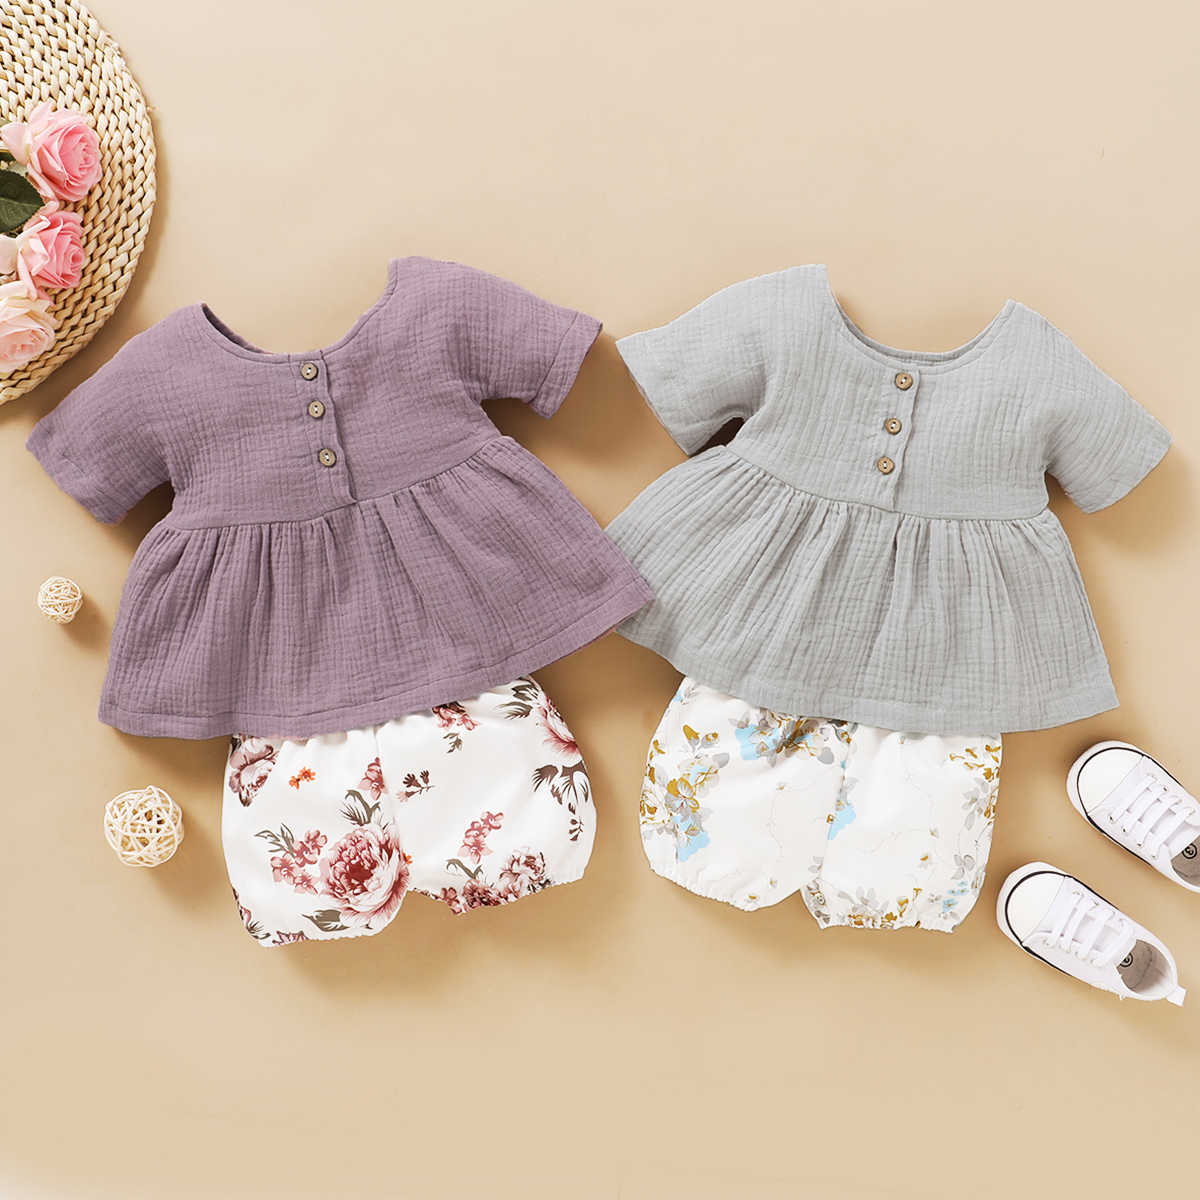 FOCUSNORM Newborn Baby Girls Halloween Net Letter Romper Ruffle Pleated Shorts Set Clothing Outfits